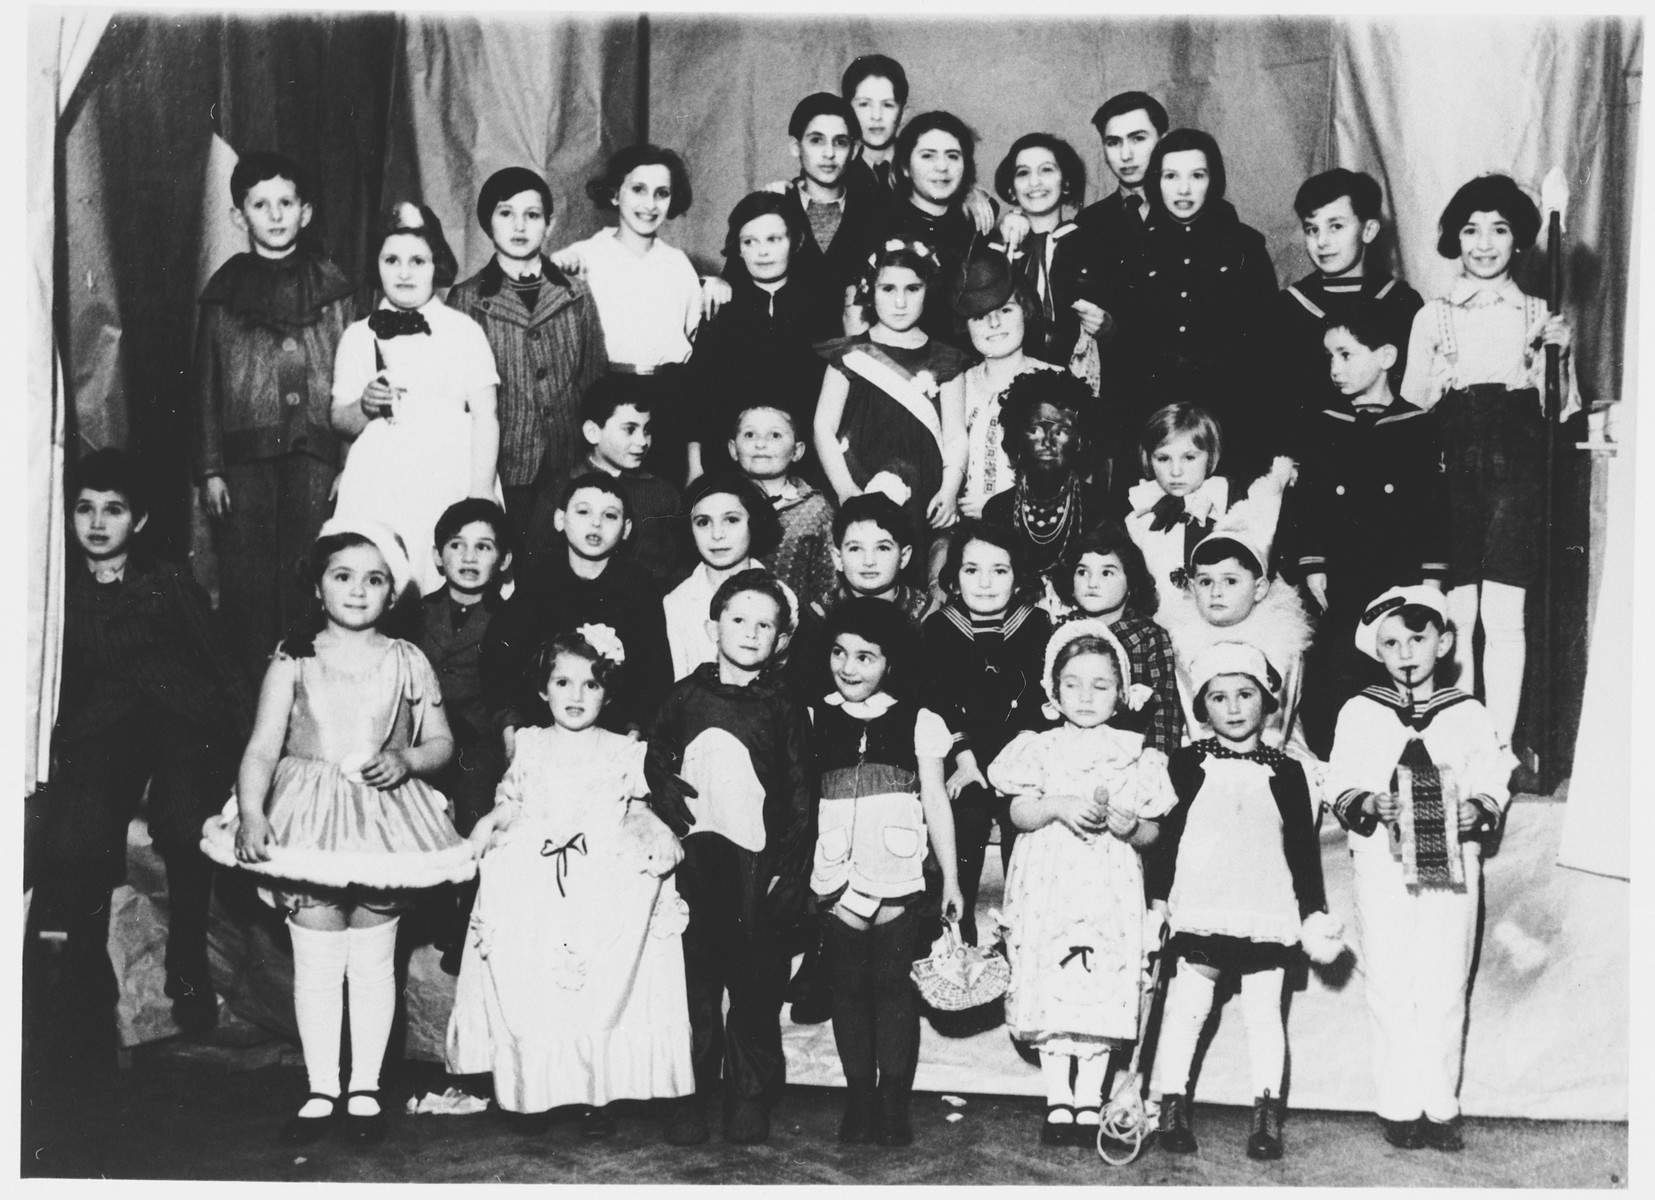 Group portrait of children from the Jewish school in Osijek, Croatia dressed in costume for Purim.   Among those pictured are: Miriam Spitzer (bottom row, left), Leah Spitzer (bottom row, third from the right), Nada Langfelder (bottom row, fourth from the right), Suzy Nadj (second row, fourth from the right), Egon Nadj (profiled, second row from top, on right), and Bella and Ruti Shmukler (top row, center).